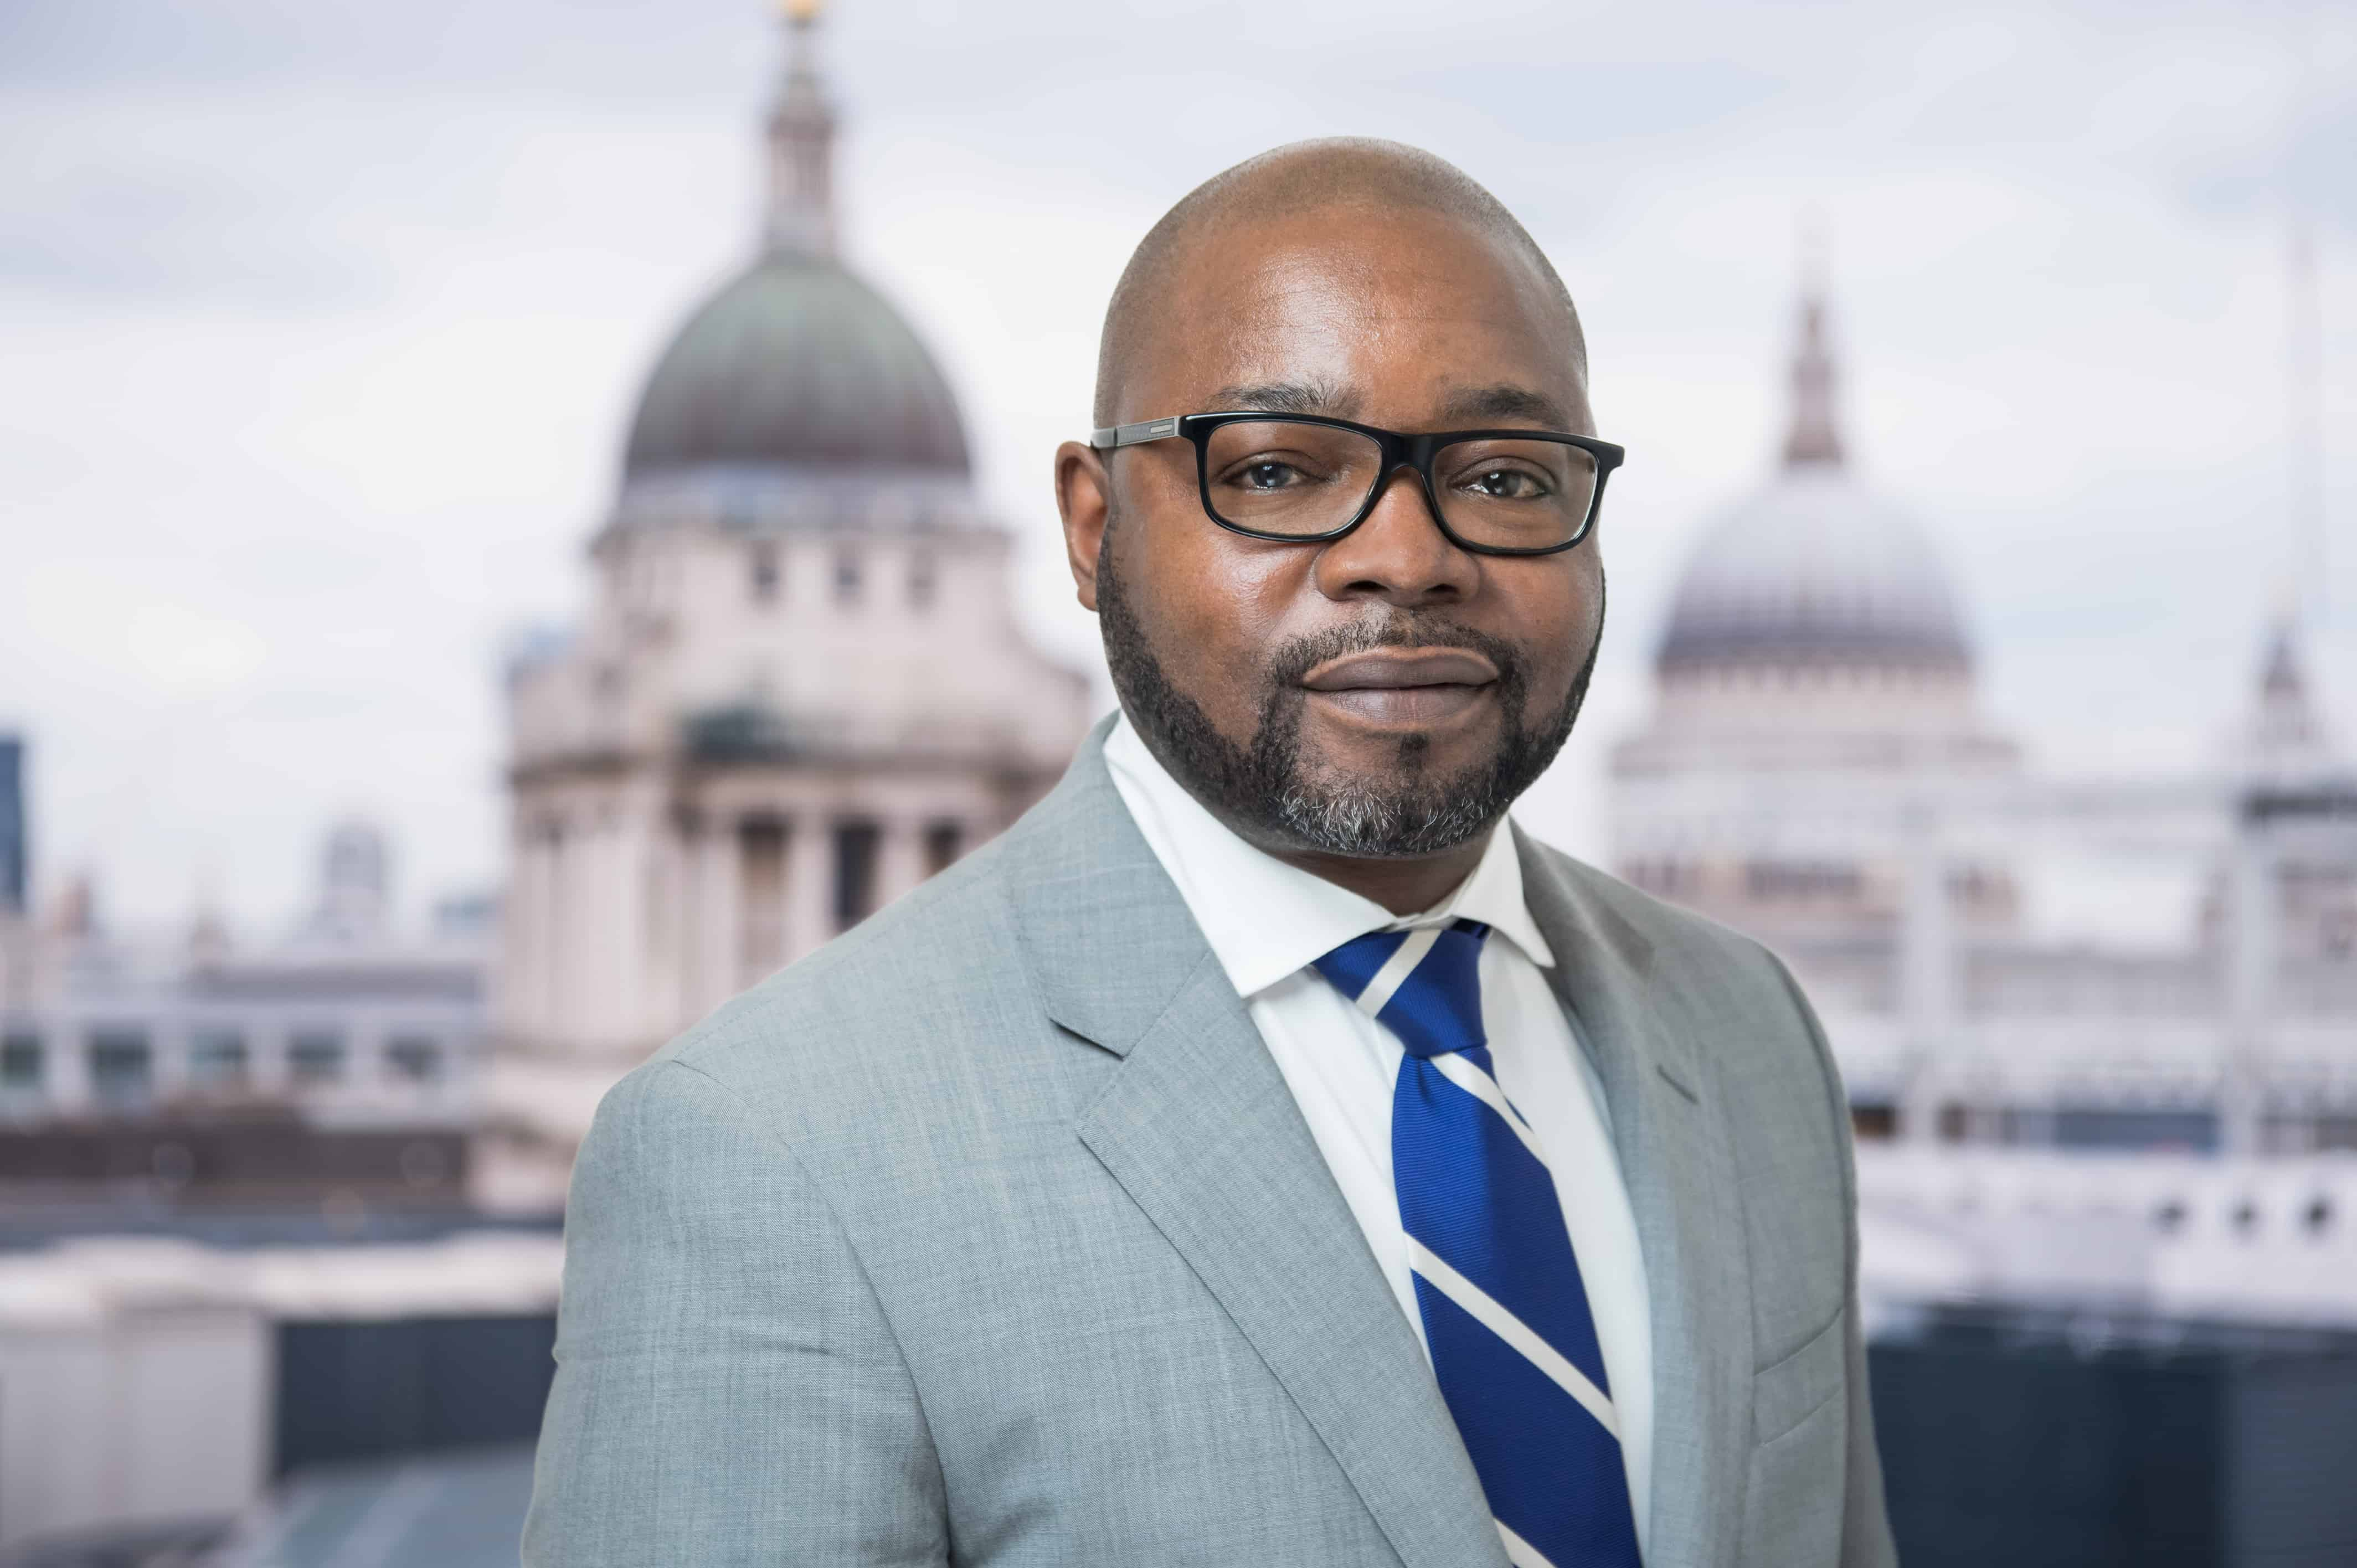 Headshot of businessman with views of St Paul's as a backdrop. London UK.